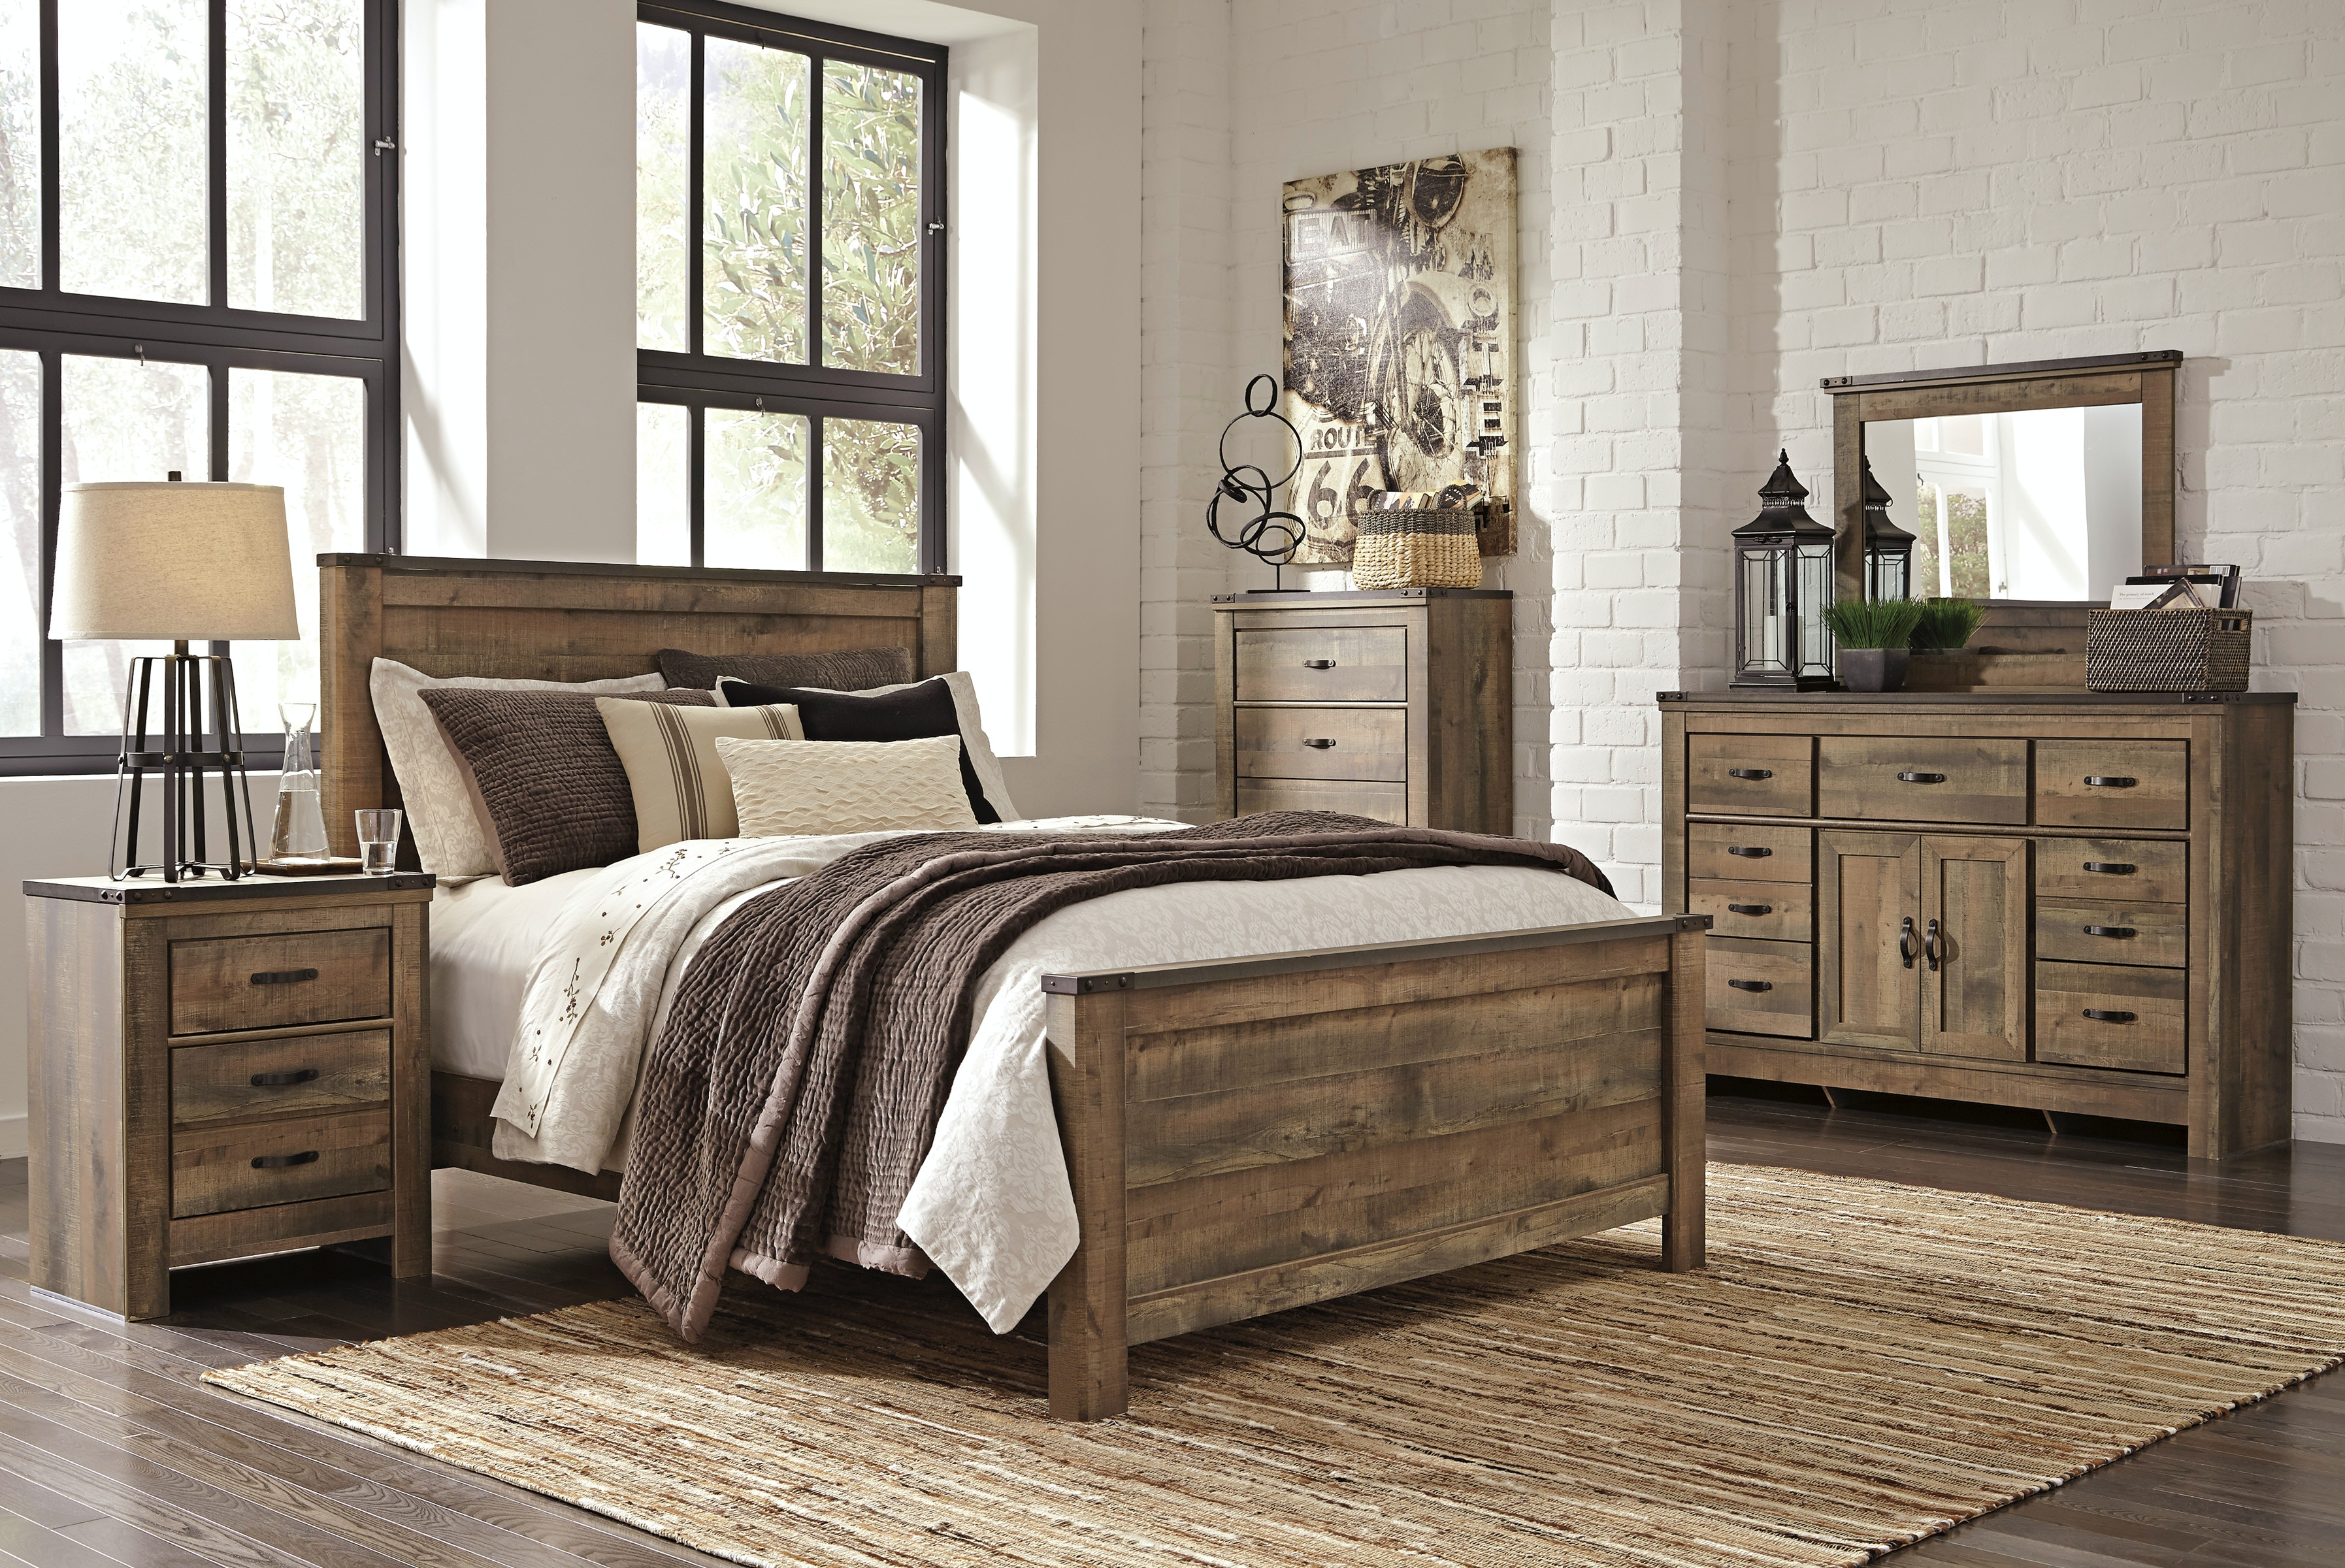 Ashley Trinell 5pc Bedroom Set B446 Queen 5pc Set